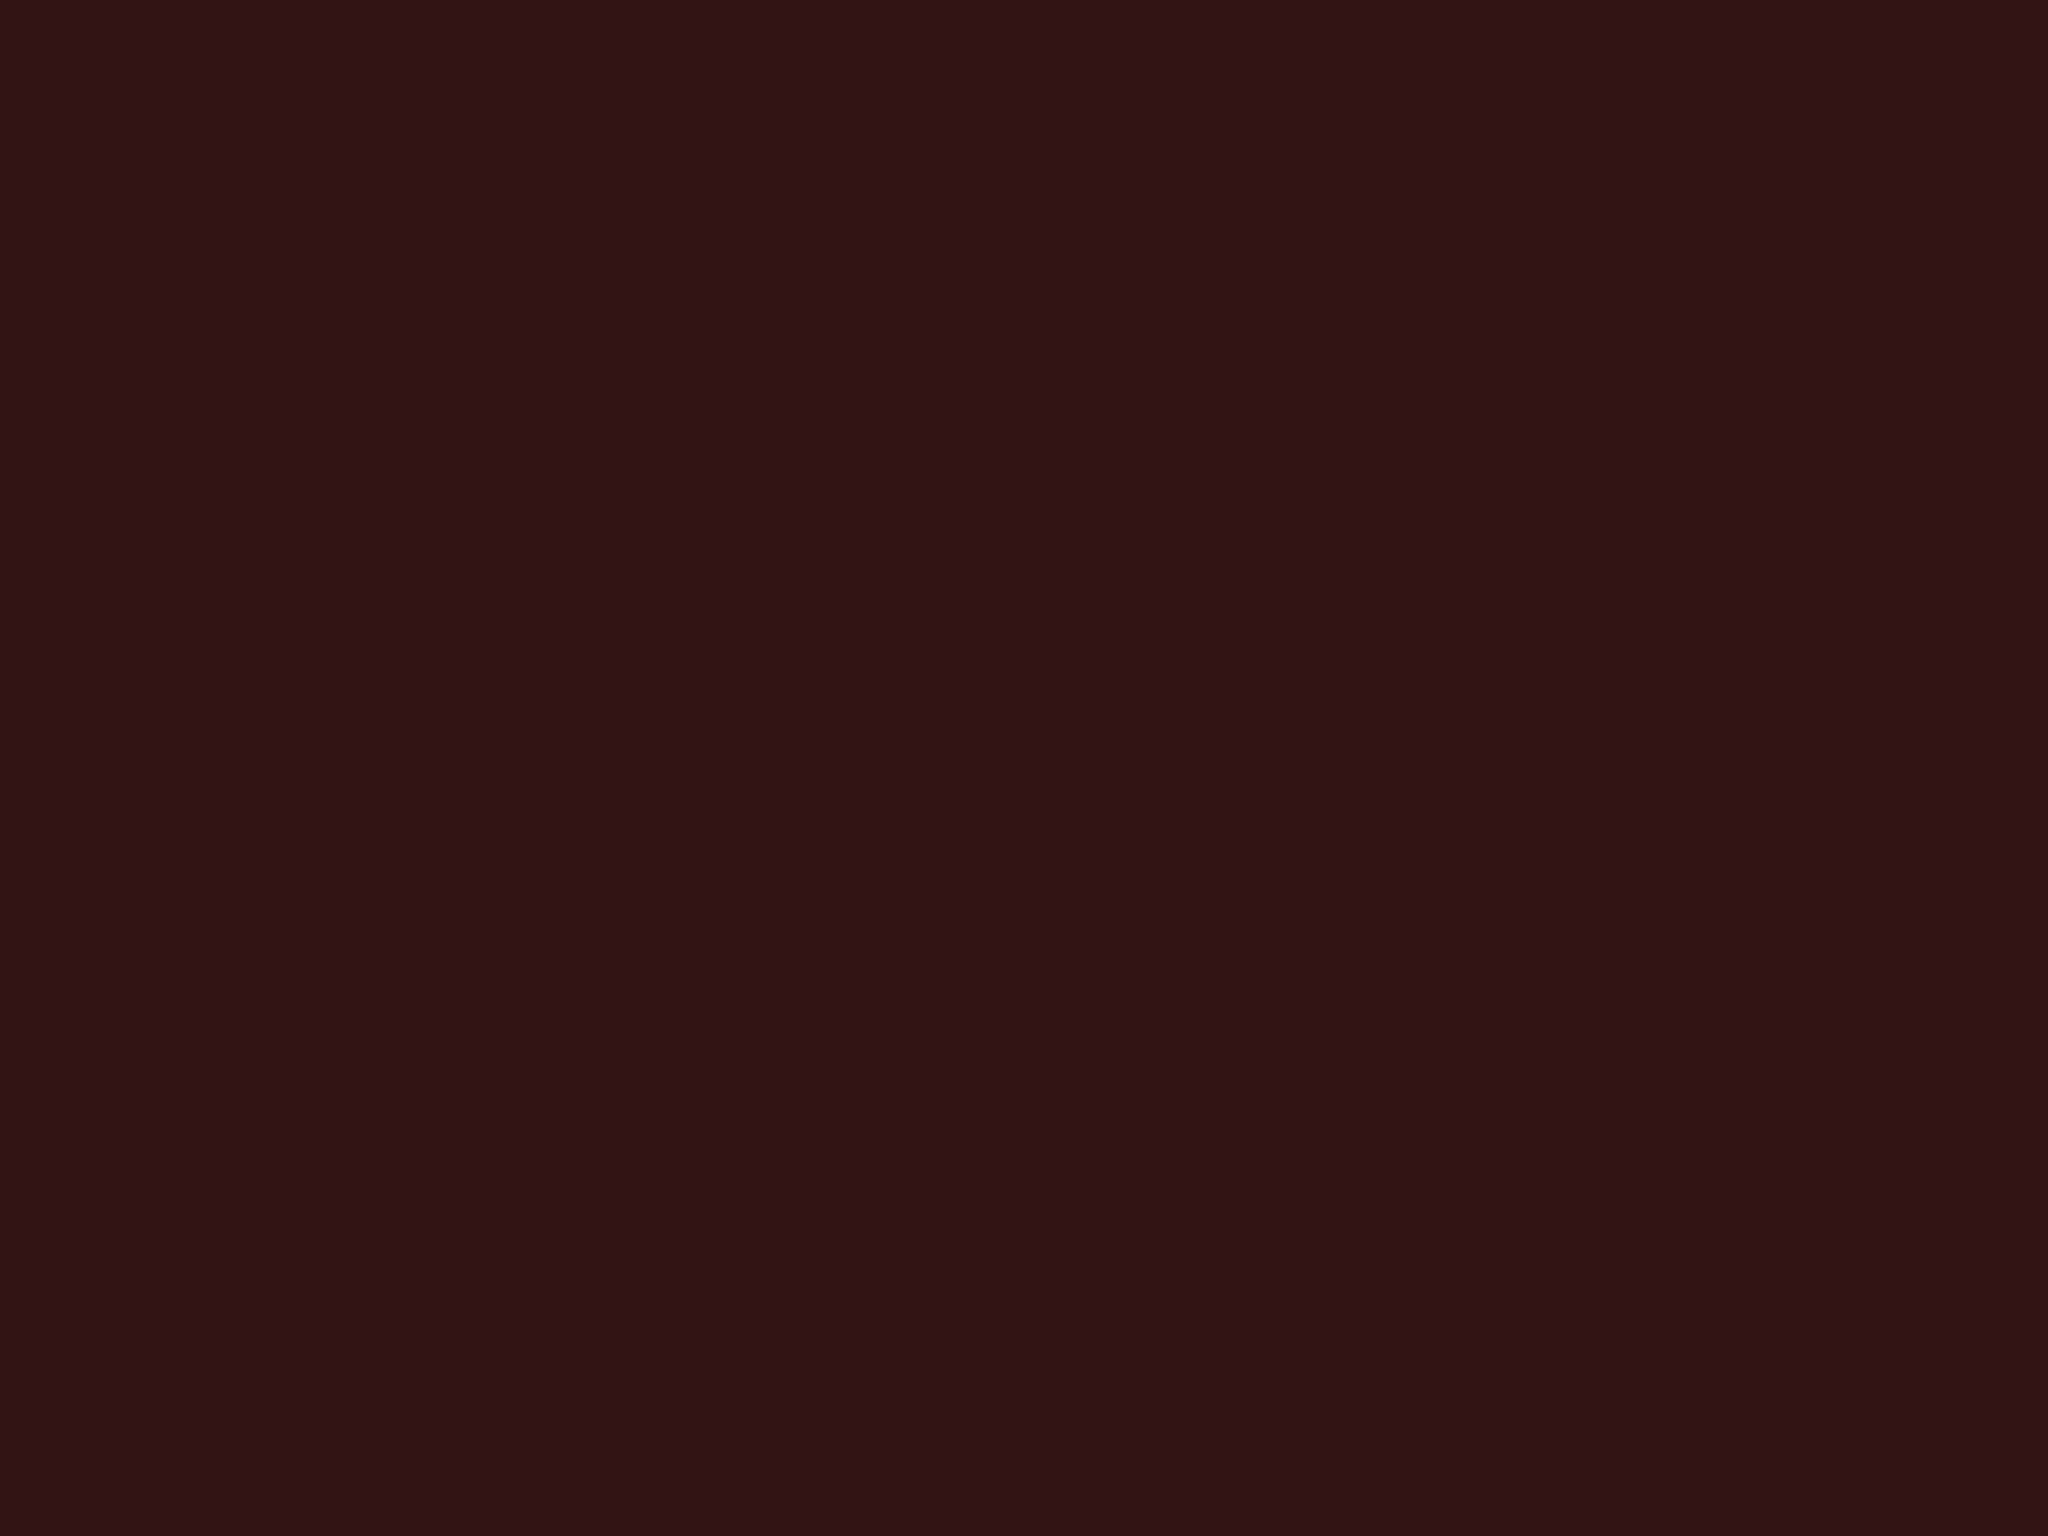 2048x1536 Seal Brown Solid Color Background